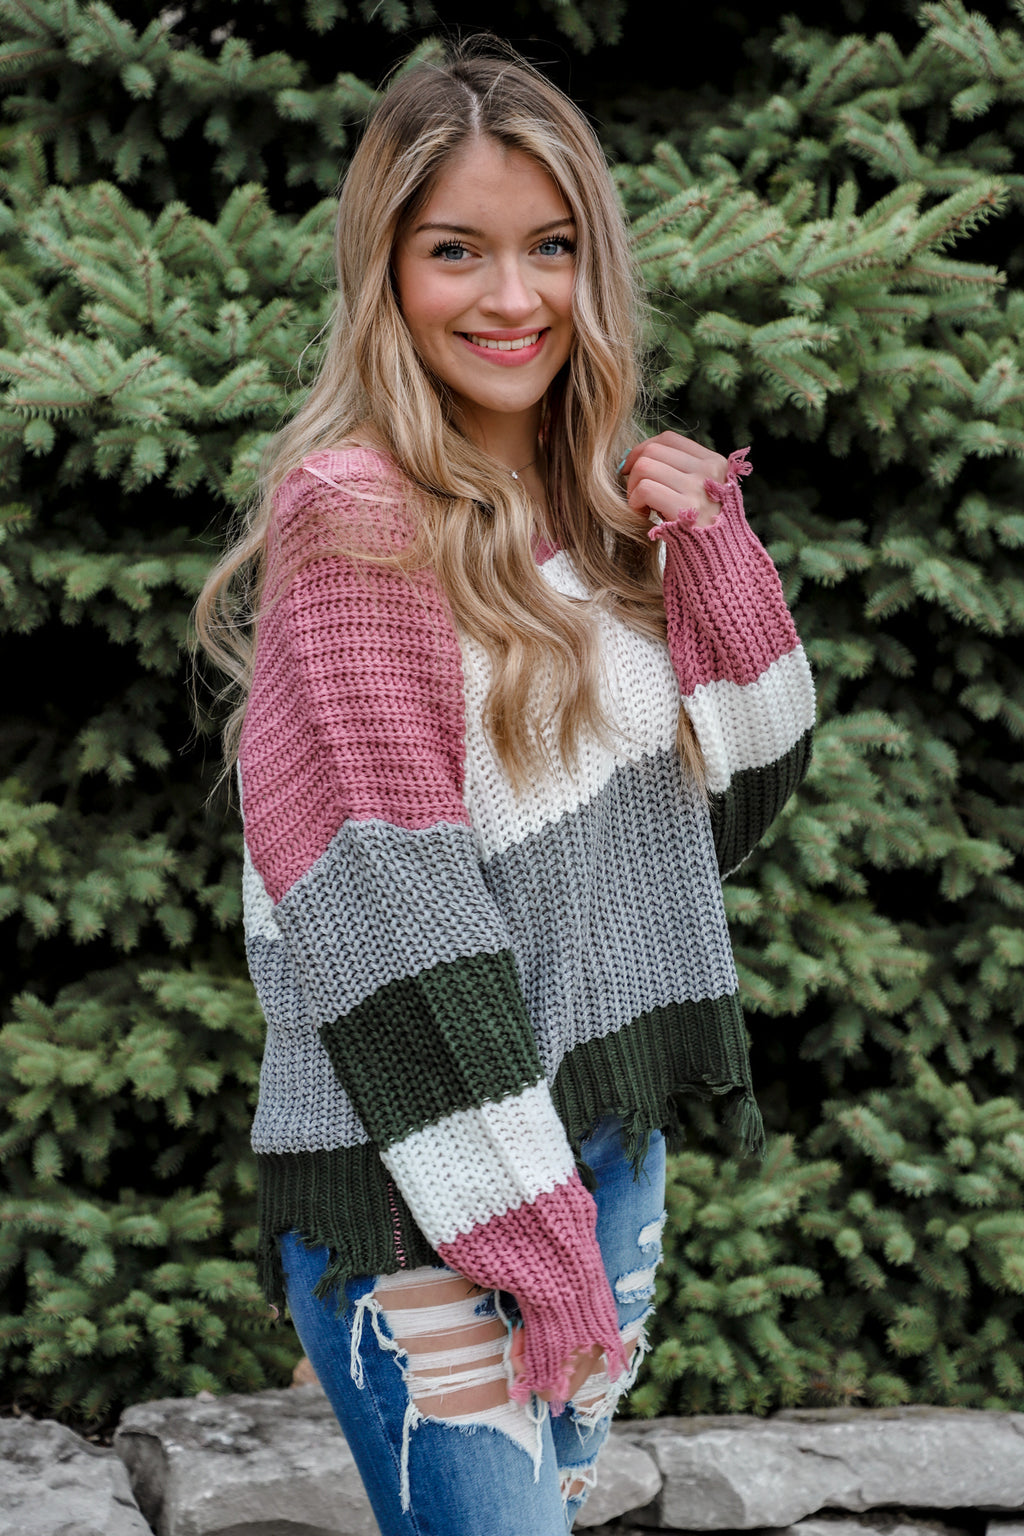 The Passion Distressed Color Block Sweater